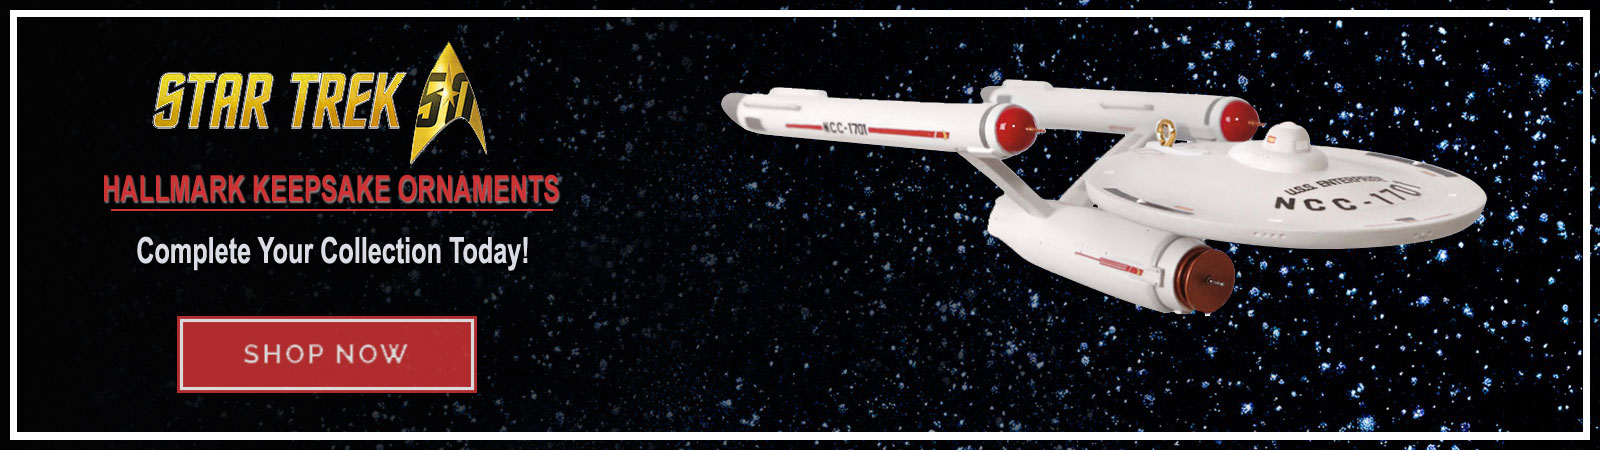 Buy Star Trek Hallmark Ornaments - Shop Now!